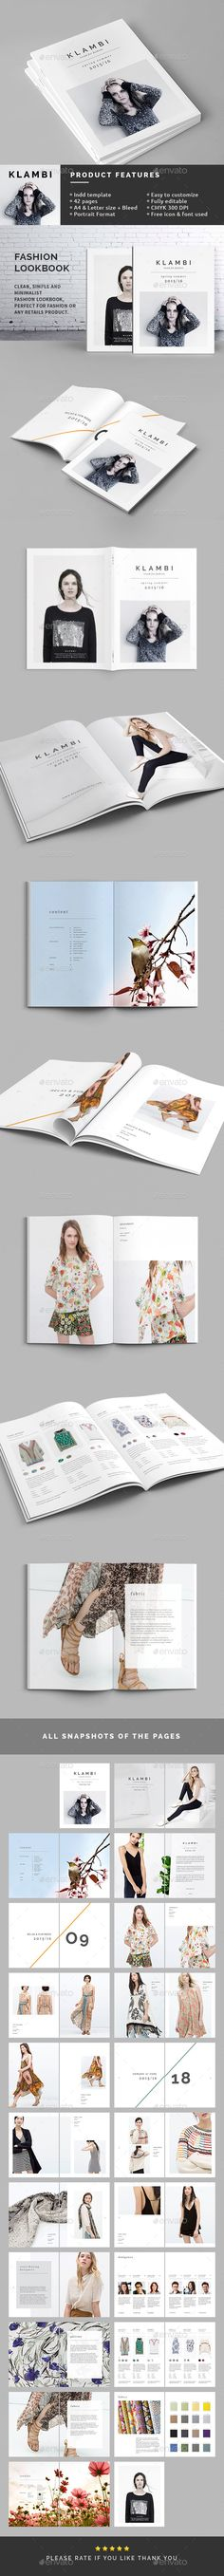 Fashion Lookbook Template #design Download: http://graphicriver.net/item/fashion-lookbook/11401509?ref=ksioks